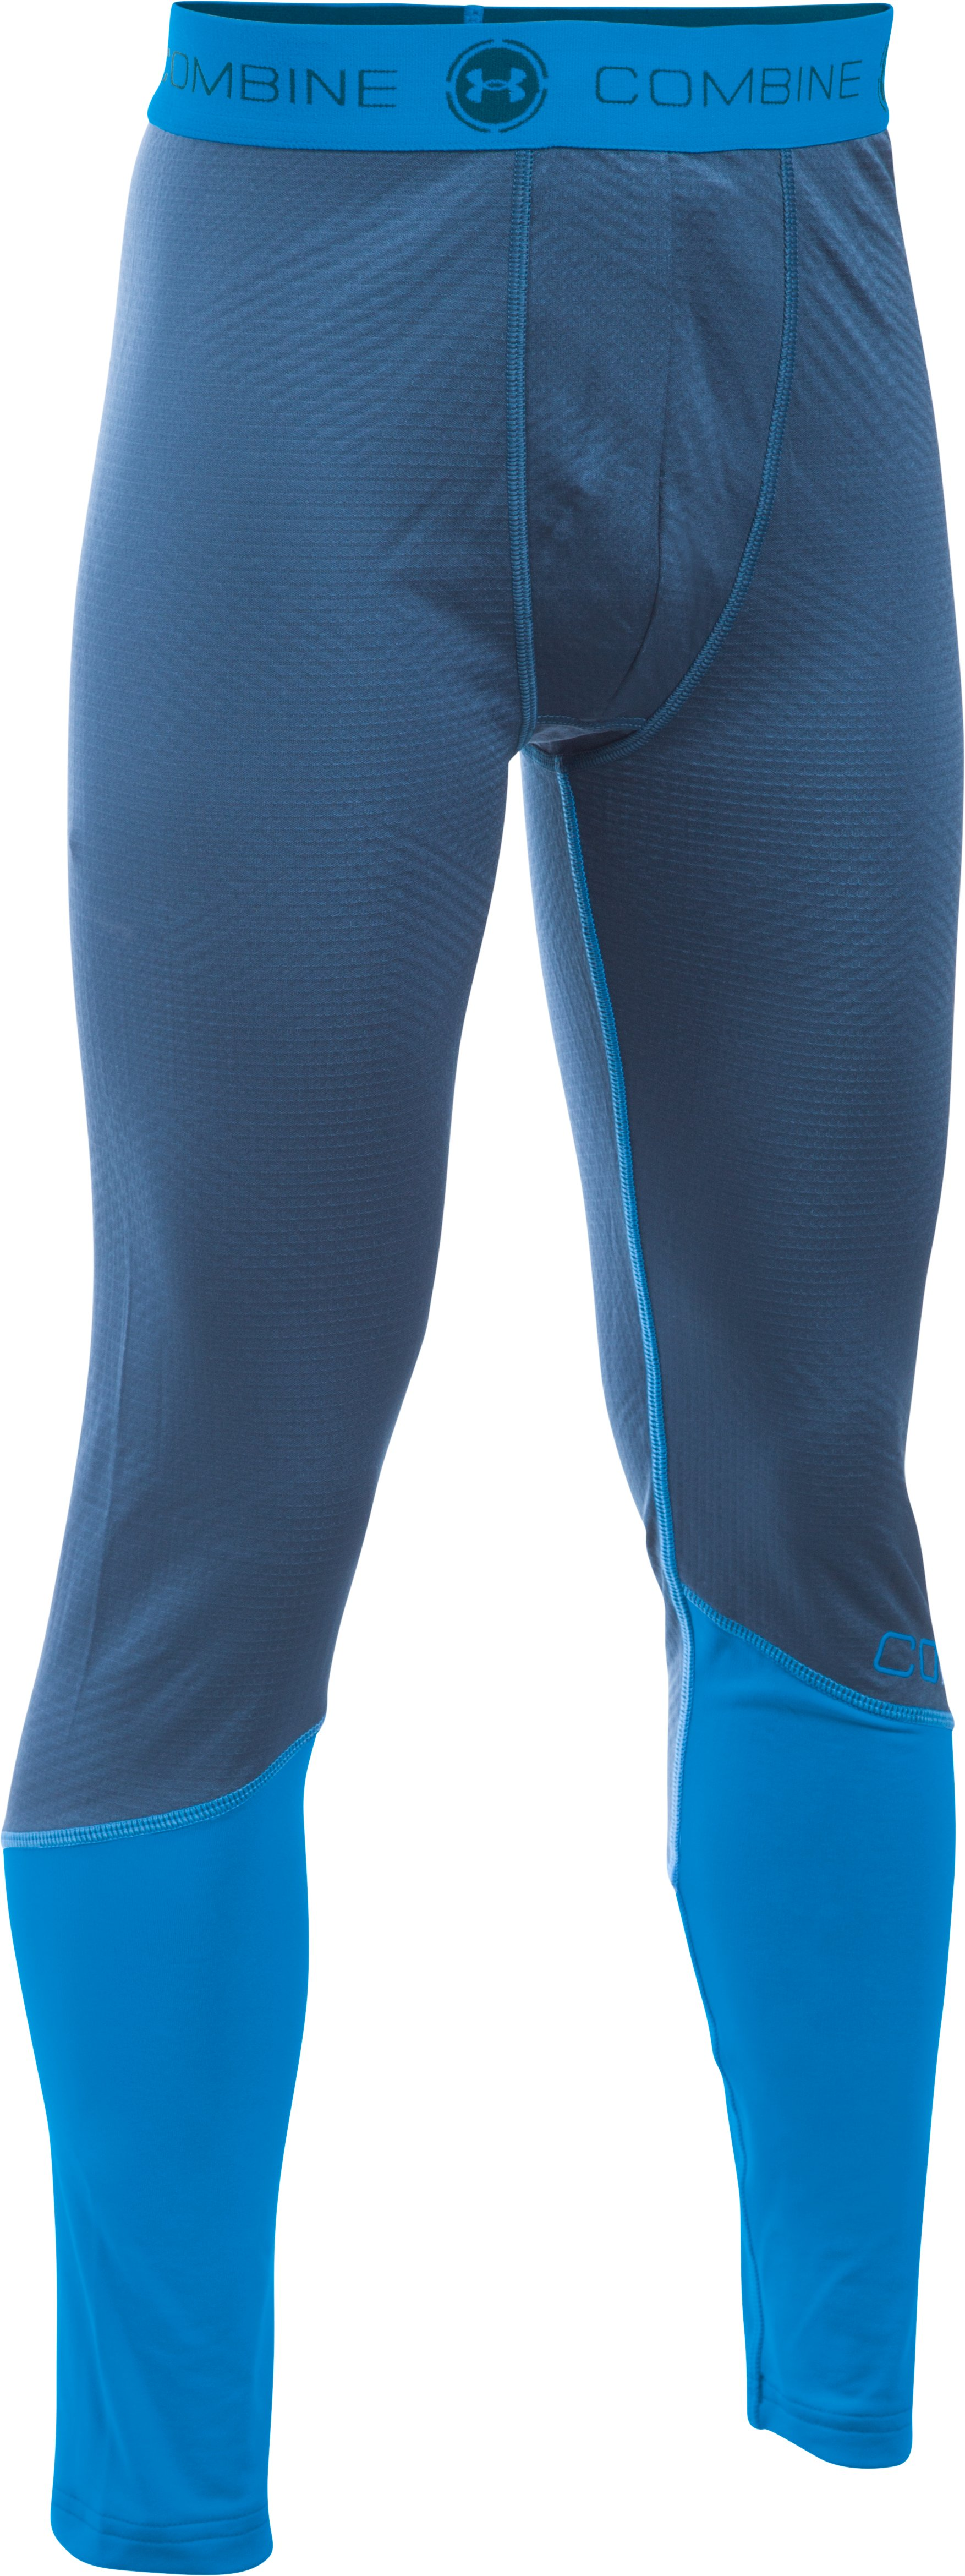 Boys' UA Combine® Training ColdGear® Infrared Fitted Leggings, PETROL BLUE,